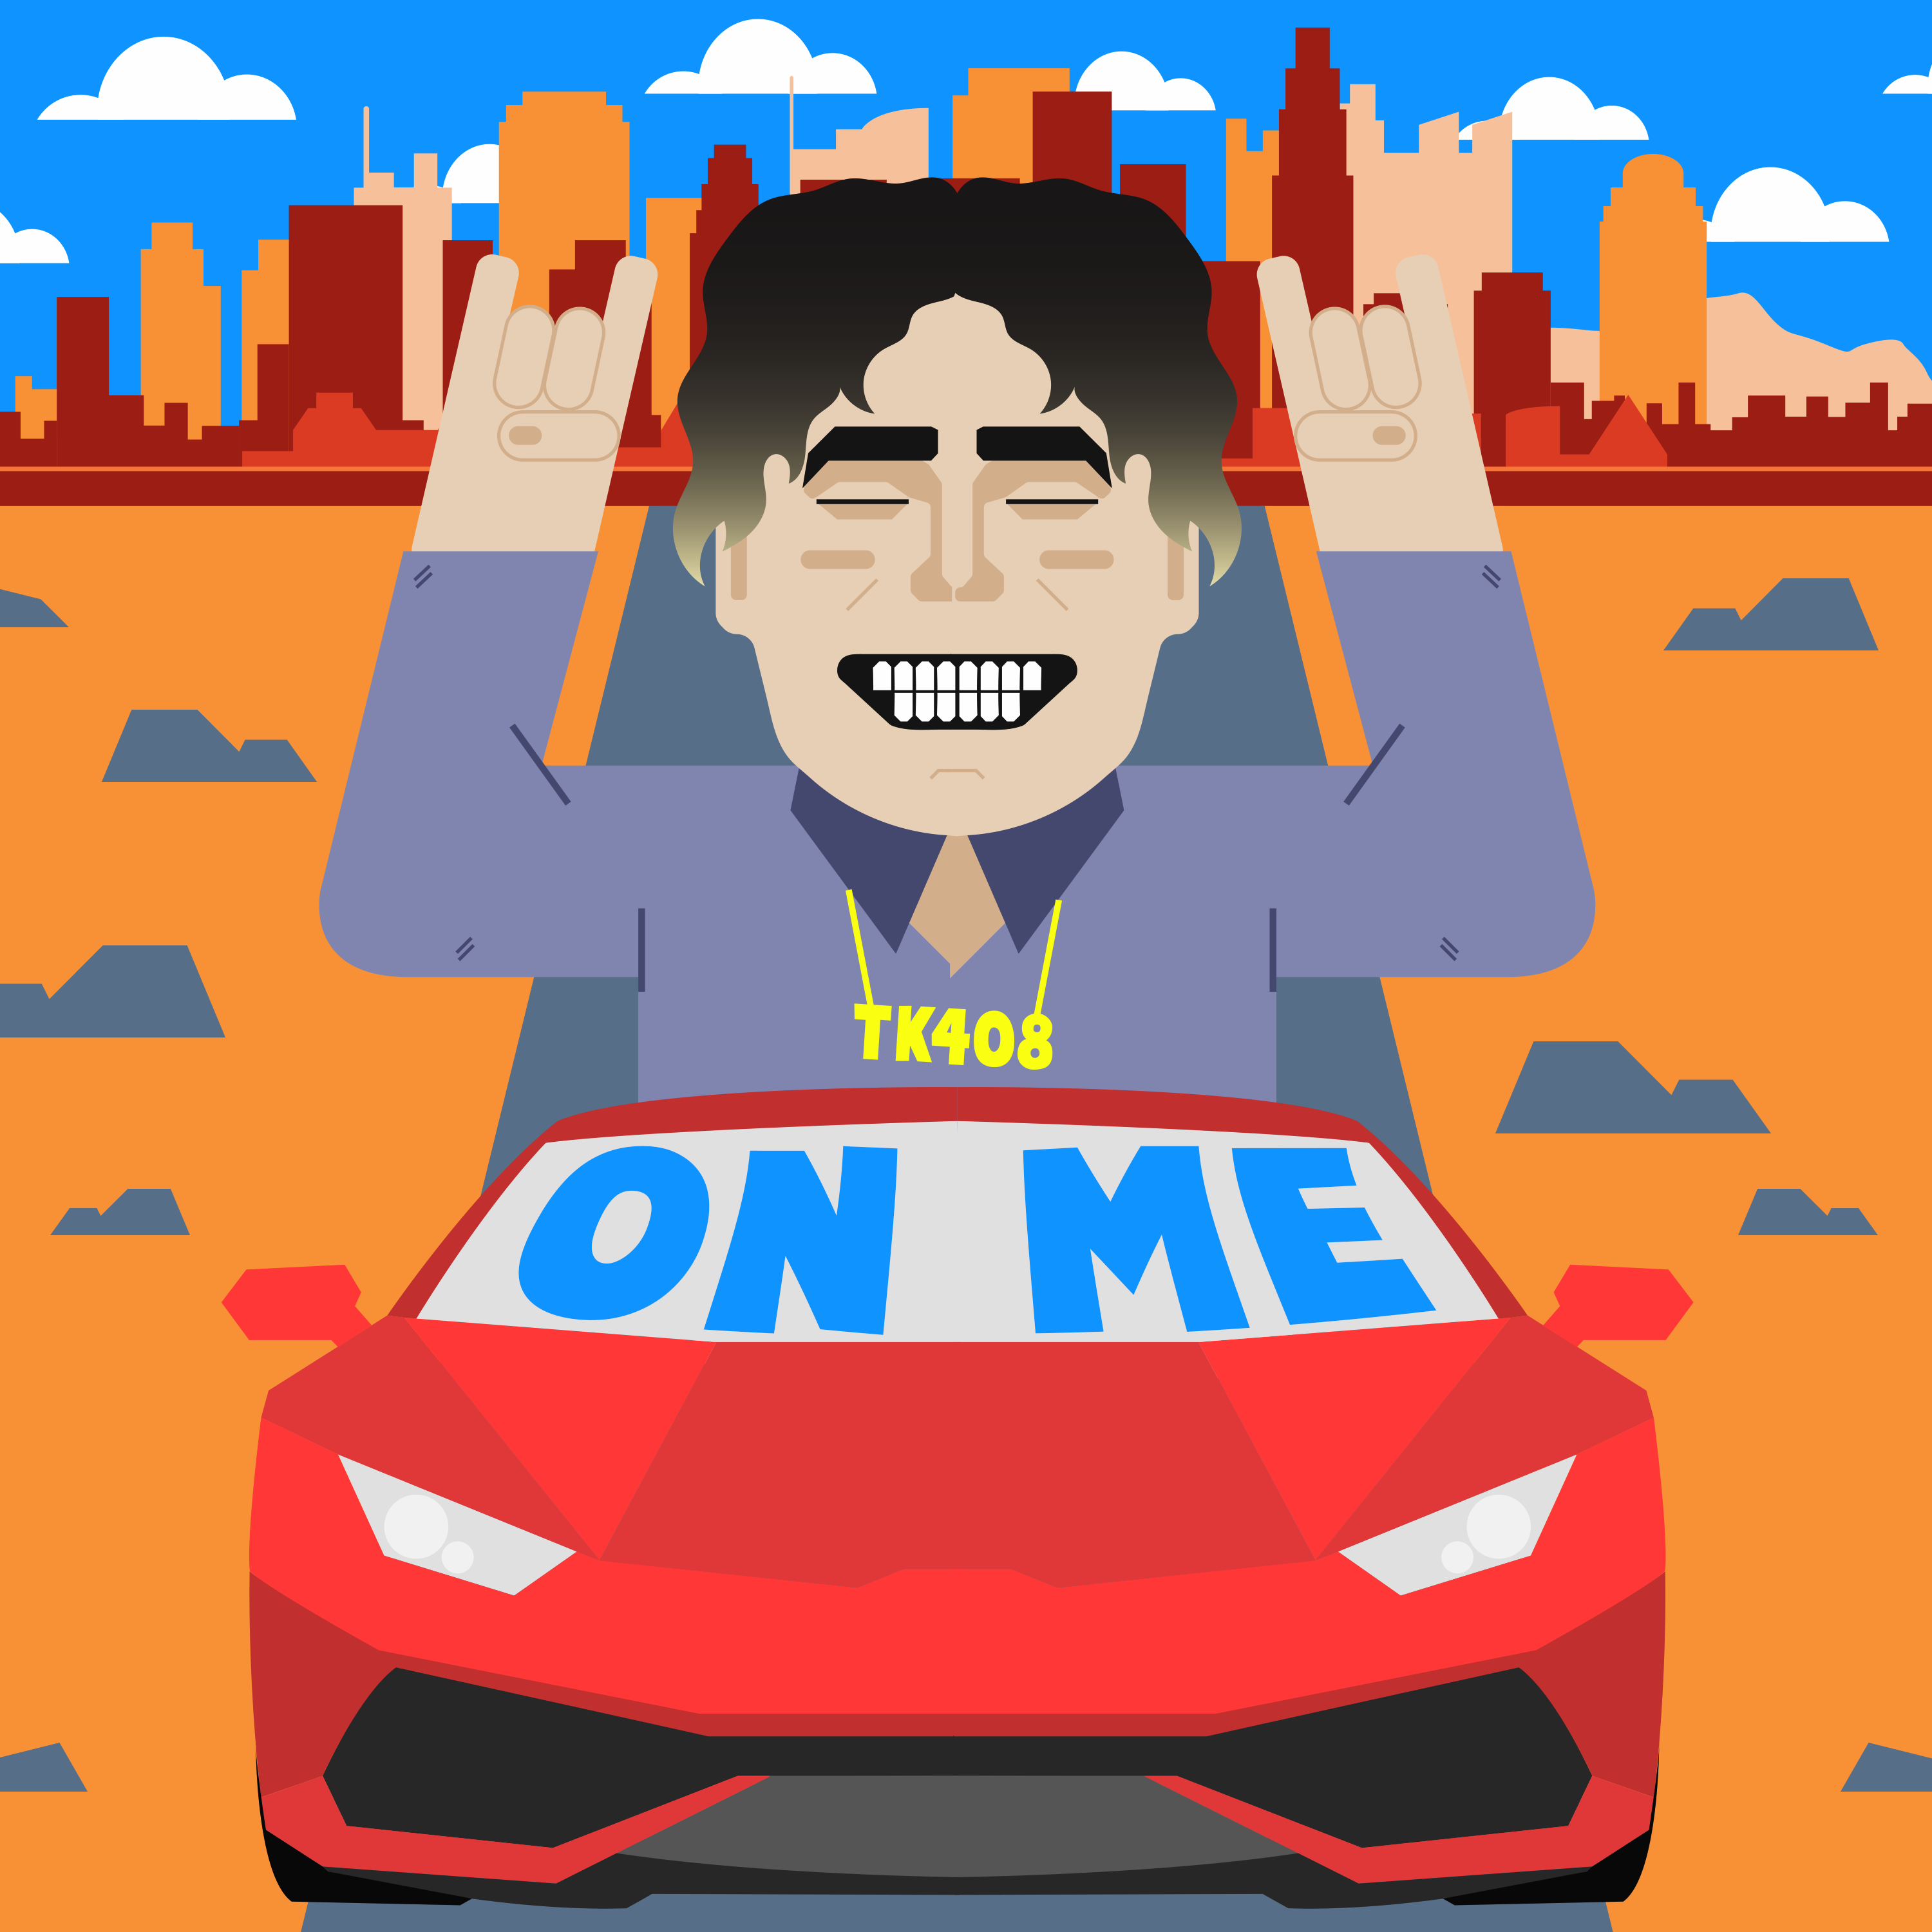 American Rapper, Tank Kid, Releases a New Upbeat Single Titled 'On Me'